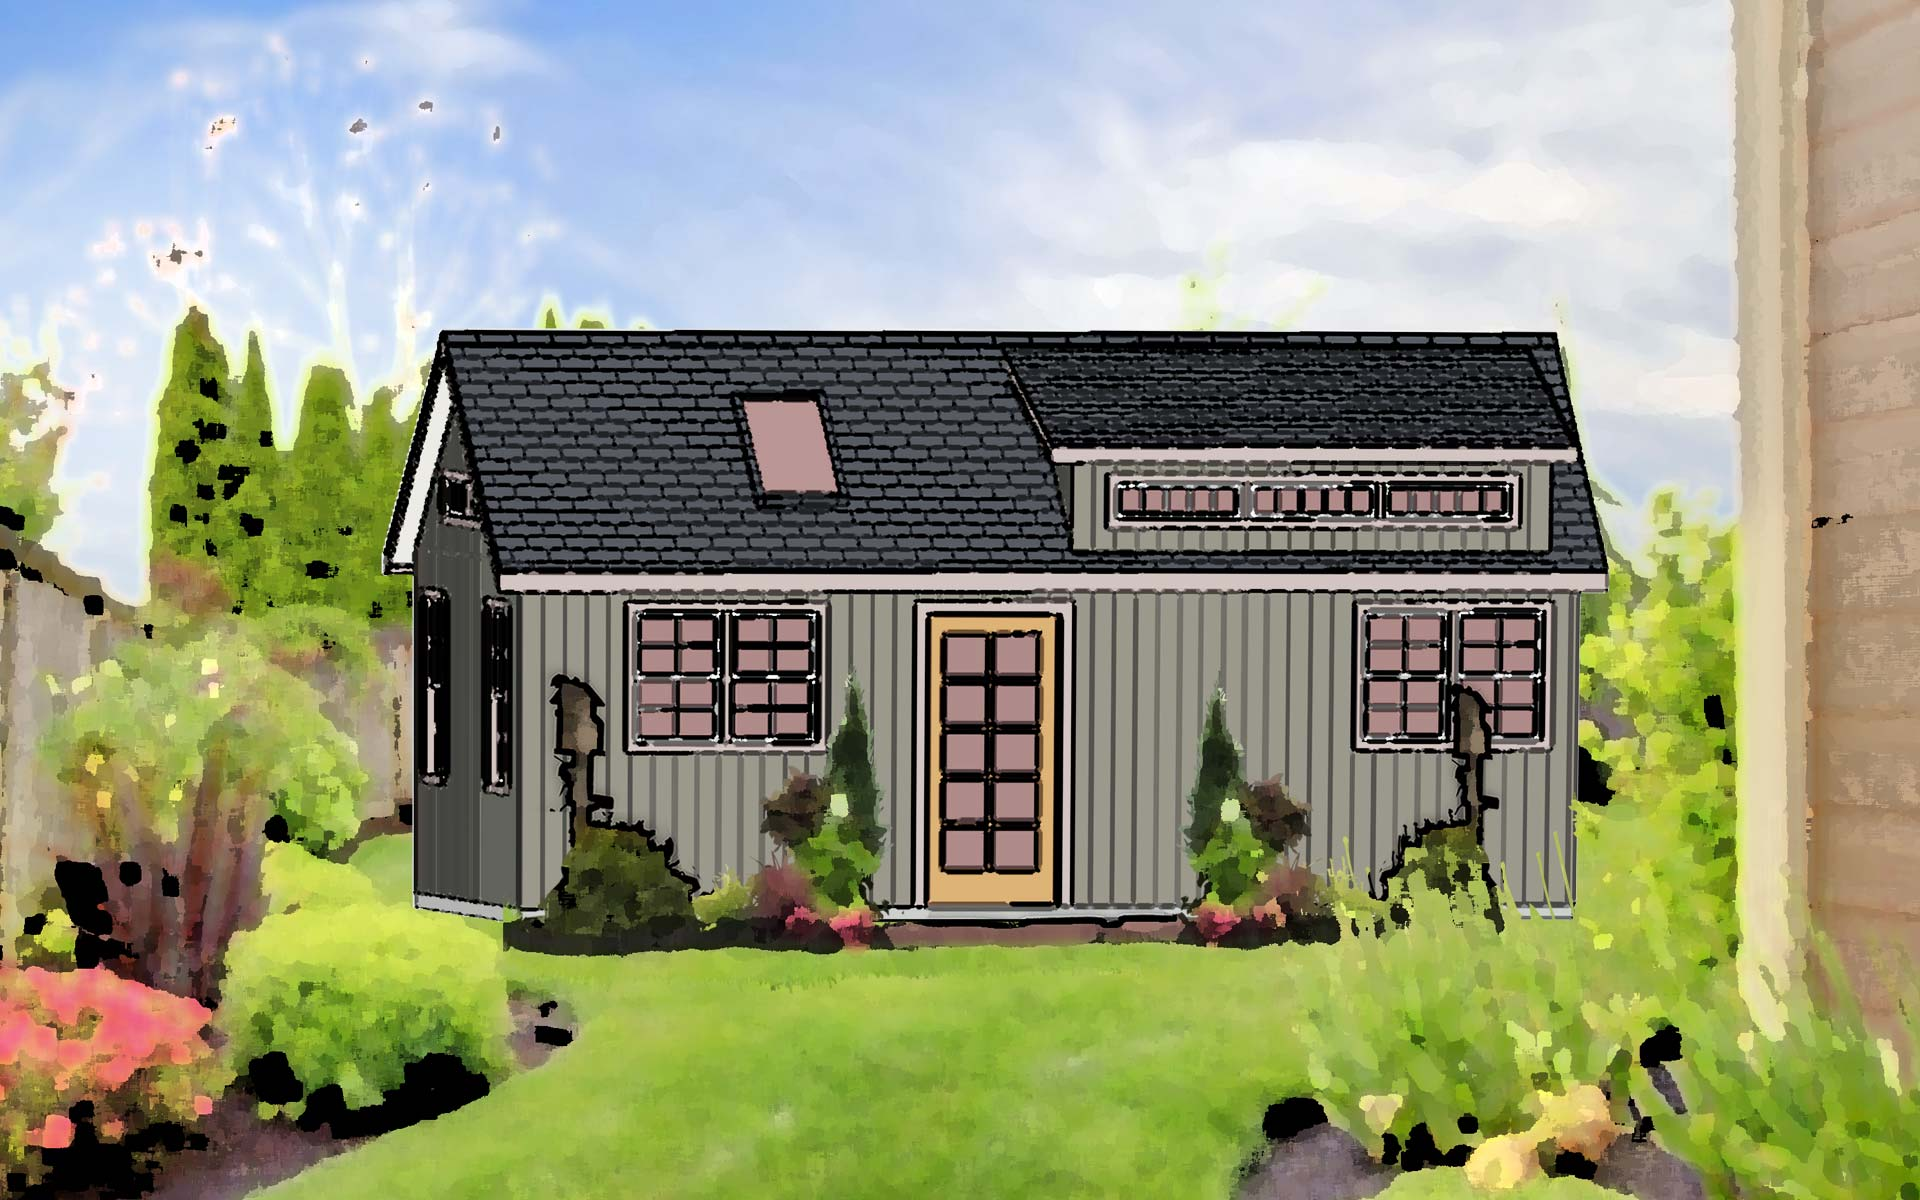 New Models Of Sheds For Sale In Pa Turn Backyard Sheds Into Tiny